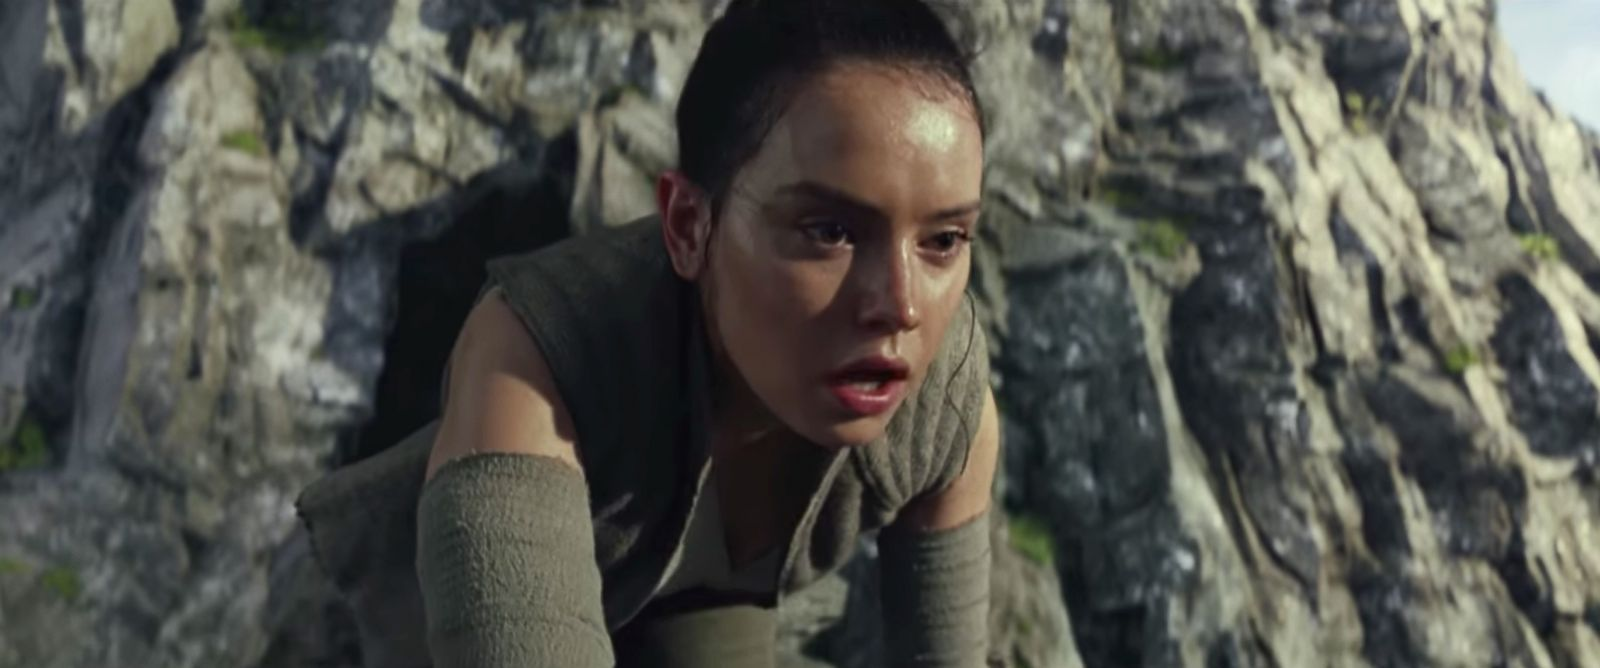 Tráiler de 'The Last Jedi' (Episodio VIII)